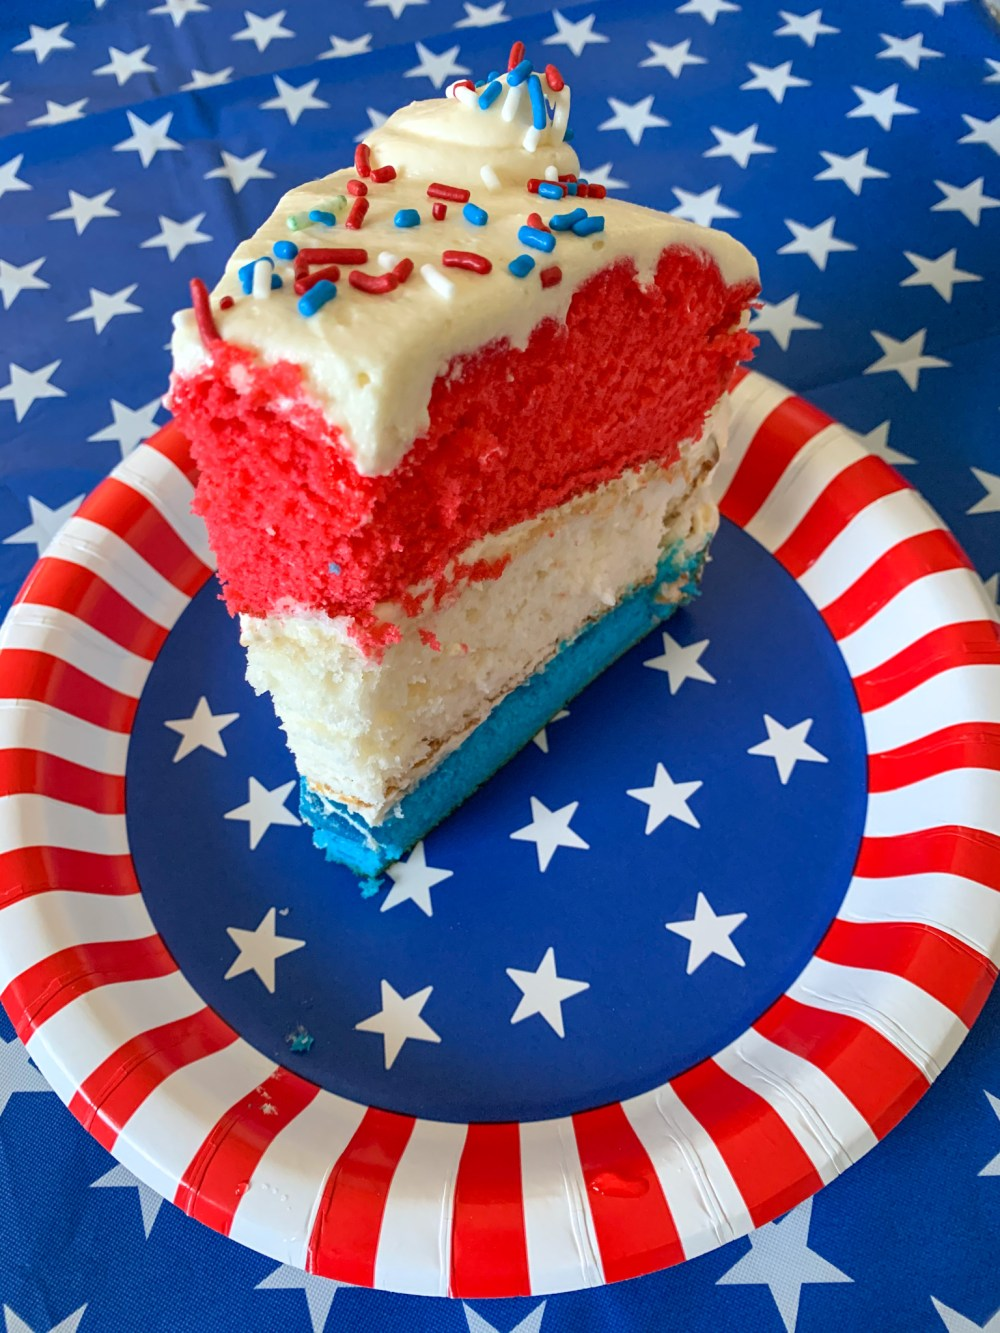 red. white, and blue cake with white icing and red, white, and blue sprinkles